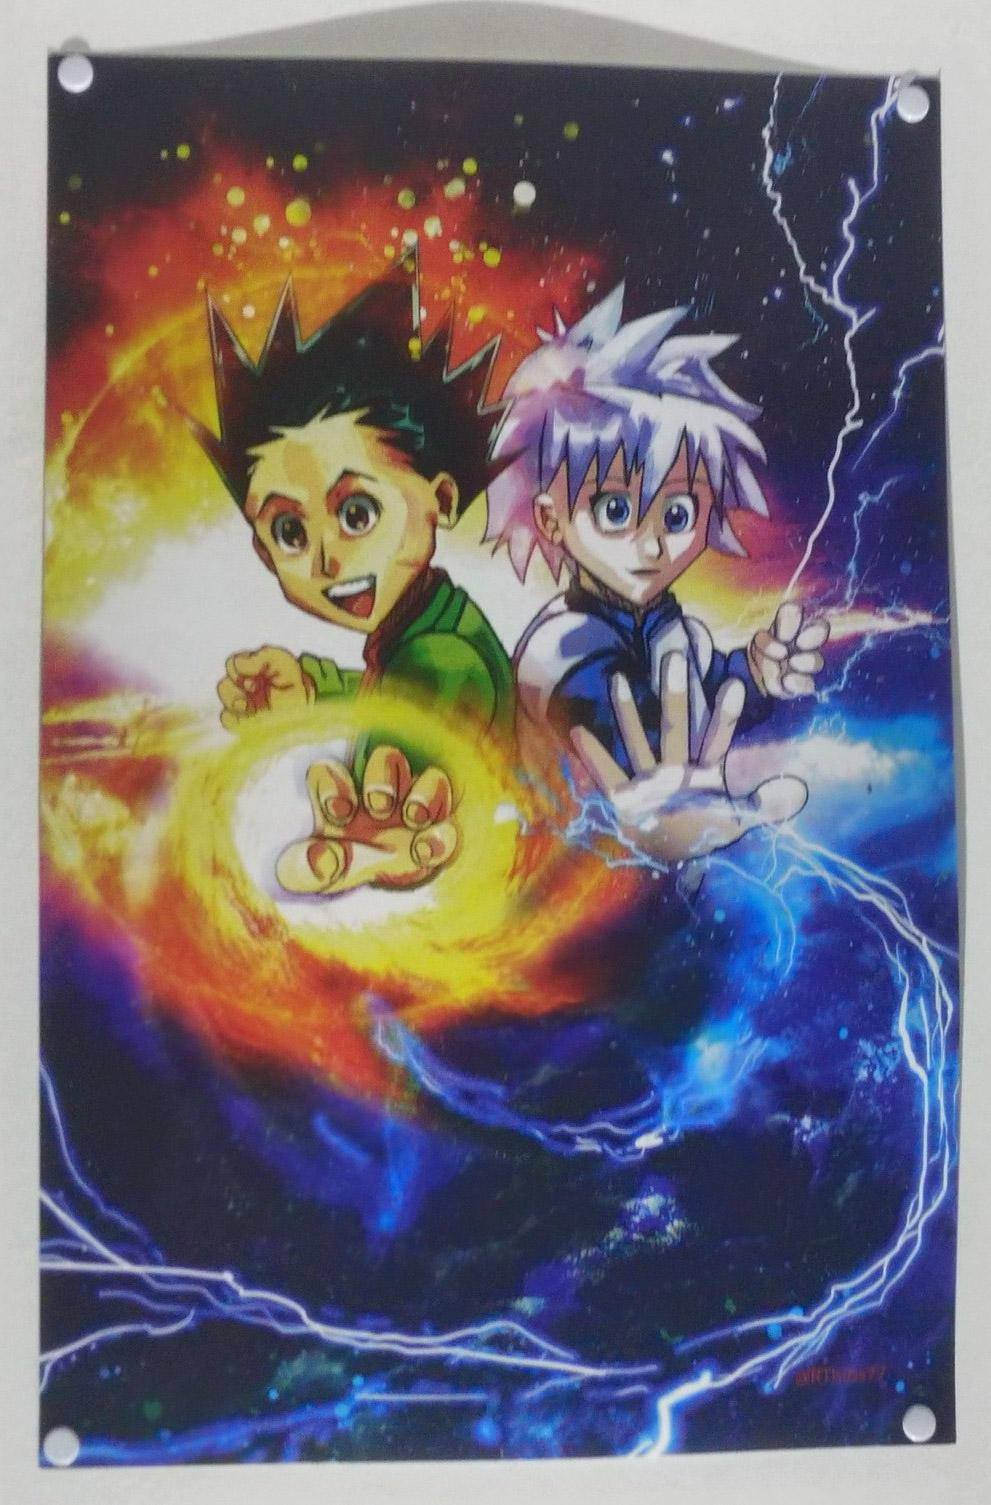 this hunter x hunter poster crappydesign